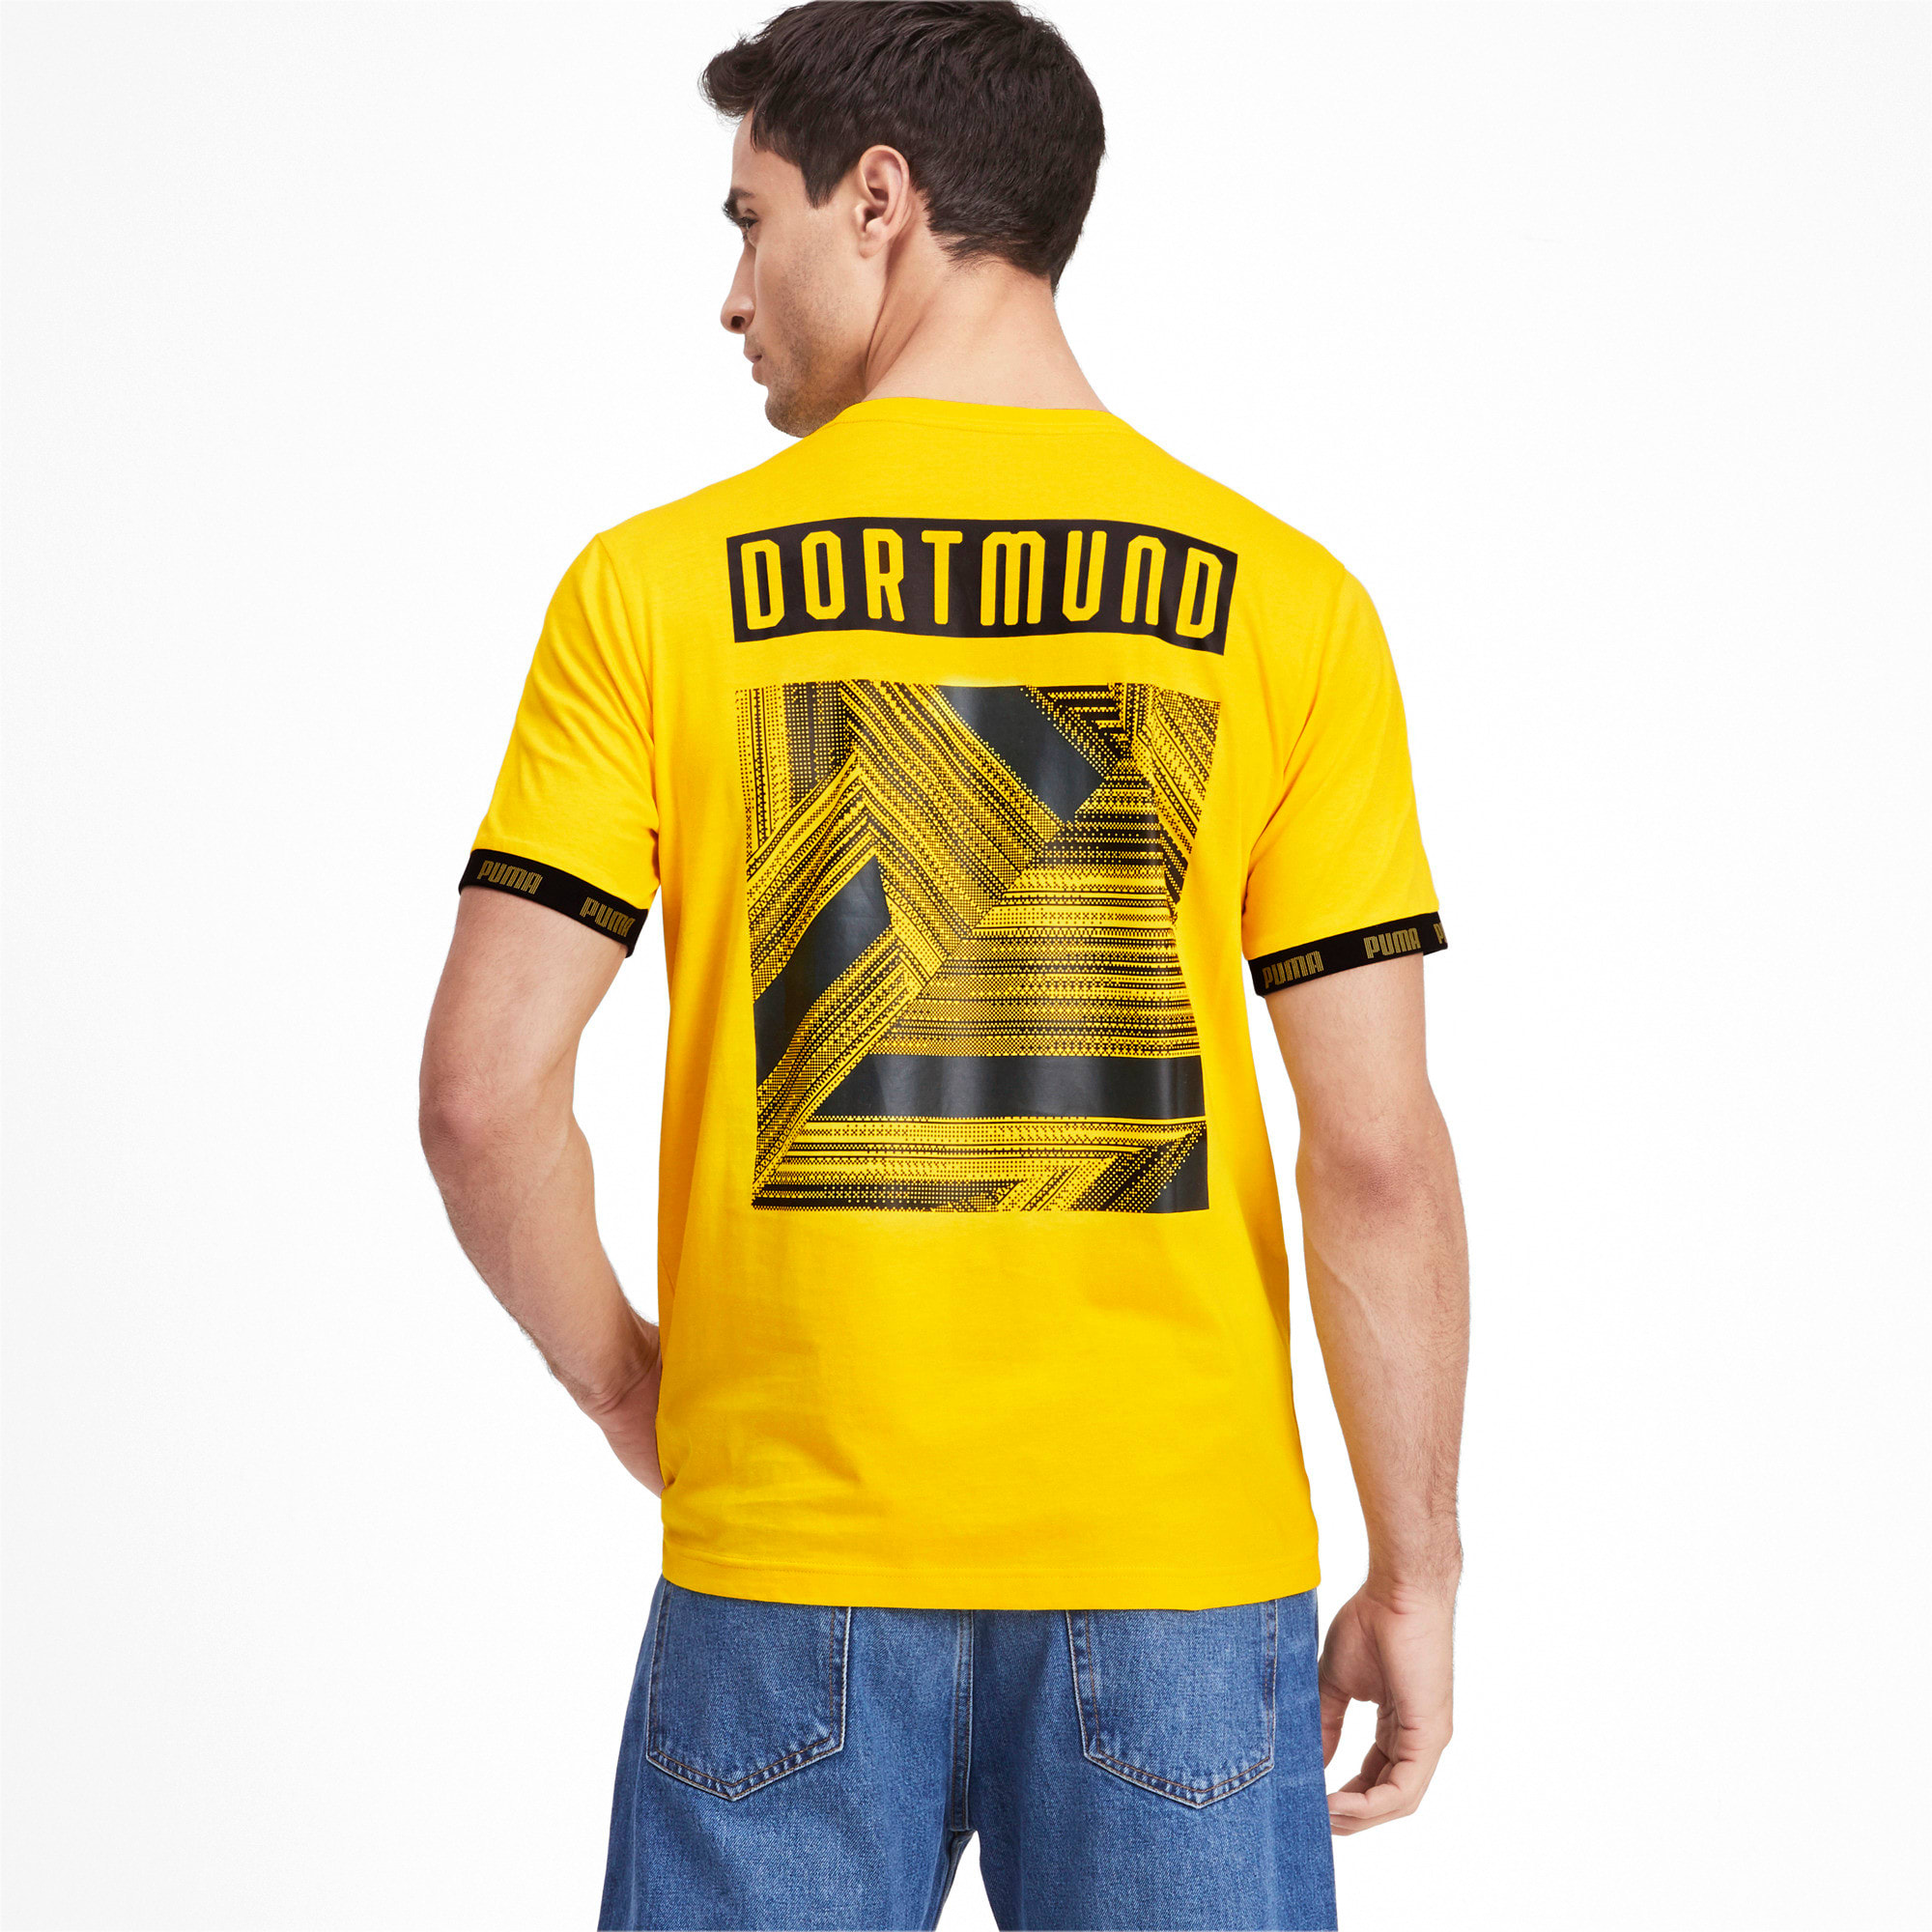 BVB Football Culture Men's Tee, Cyber Yellow, large